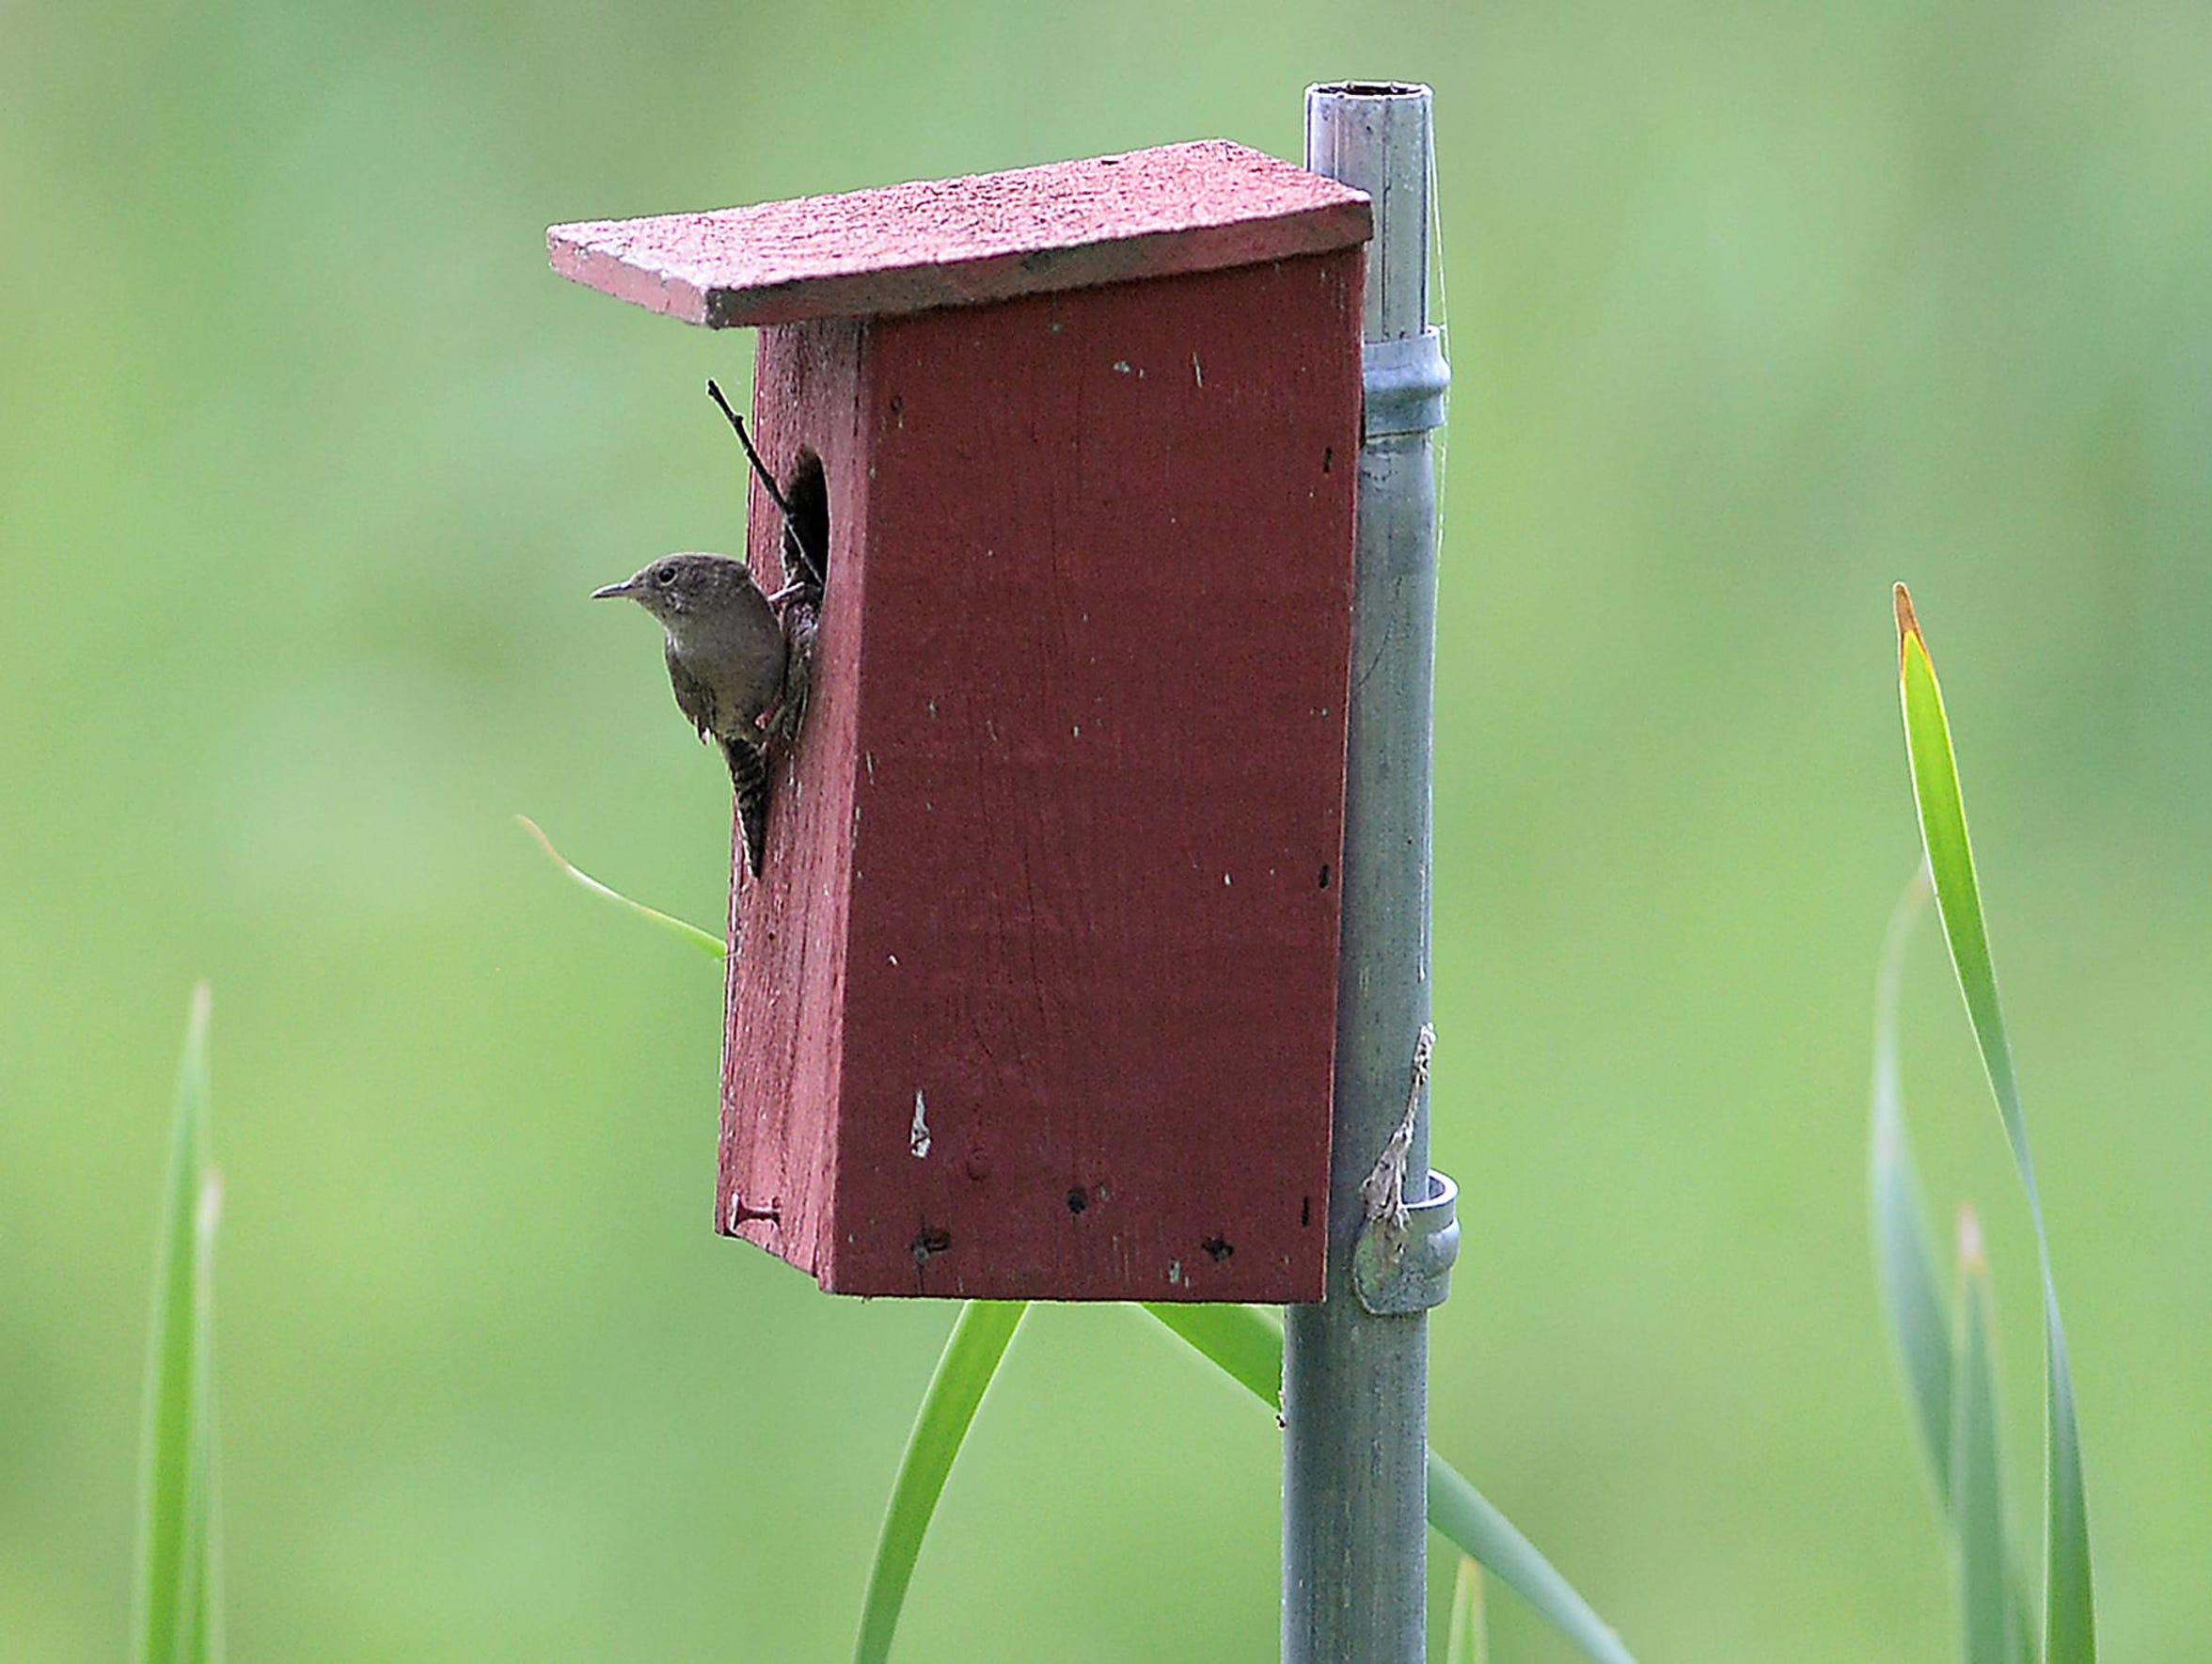 With so many native plants on the property, birds and